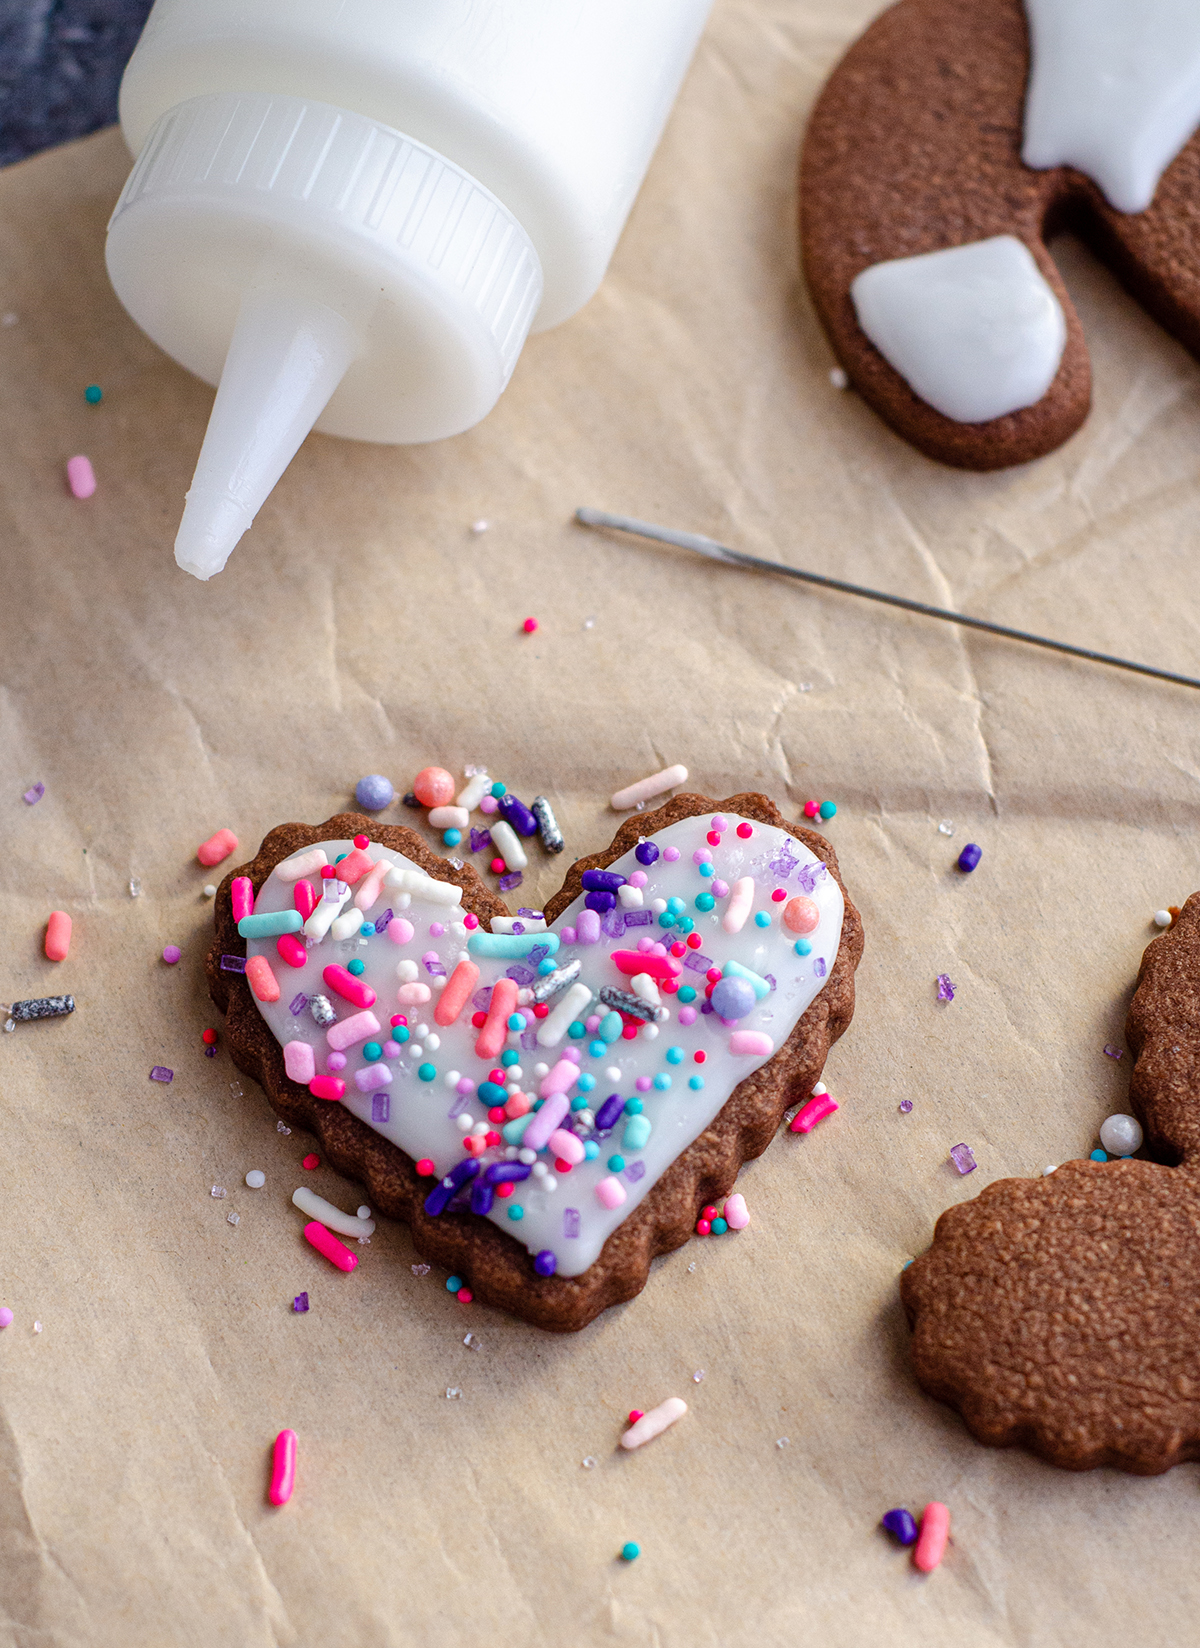 chocolate heart sugar cookie decorated with white royal icing and pink, purple, and blue sprinkles